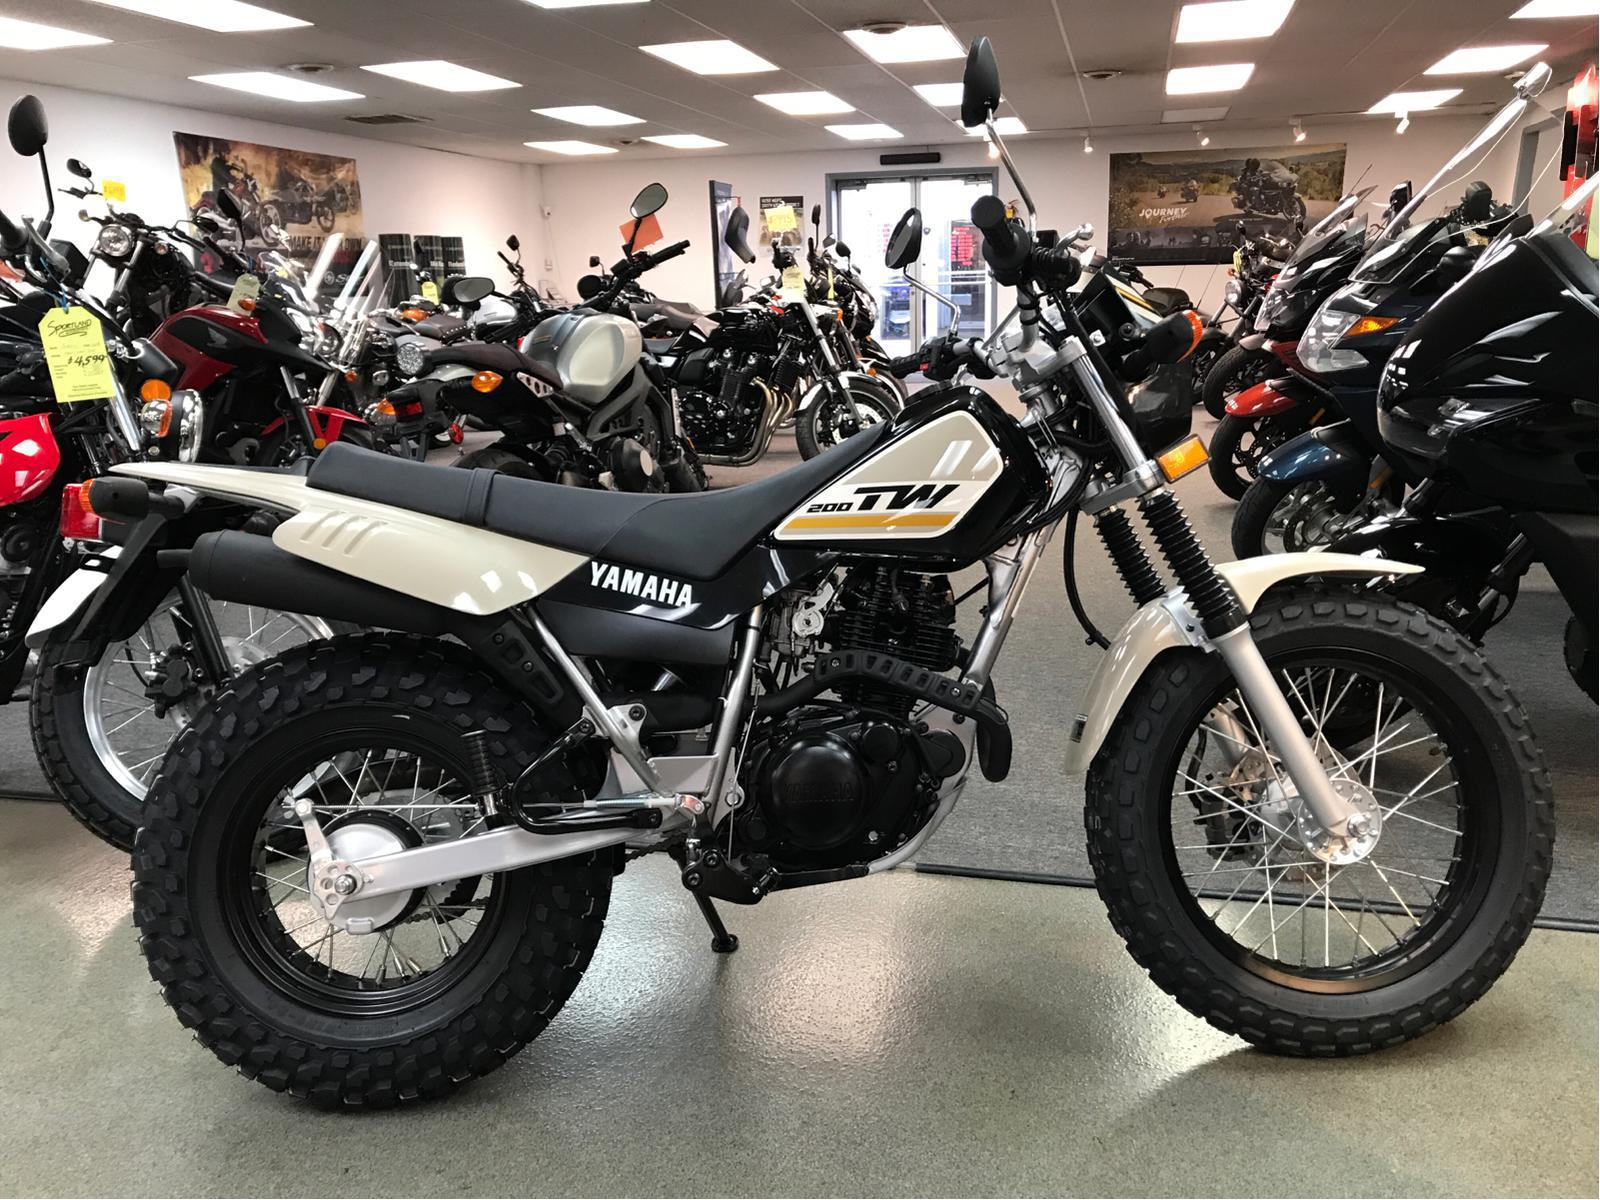 2018 Yamaha TW200 for sale in Urbana, IL | Sportland Motorsports ...